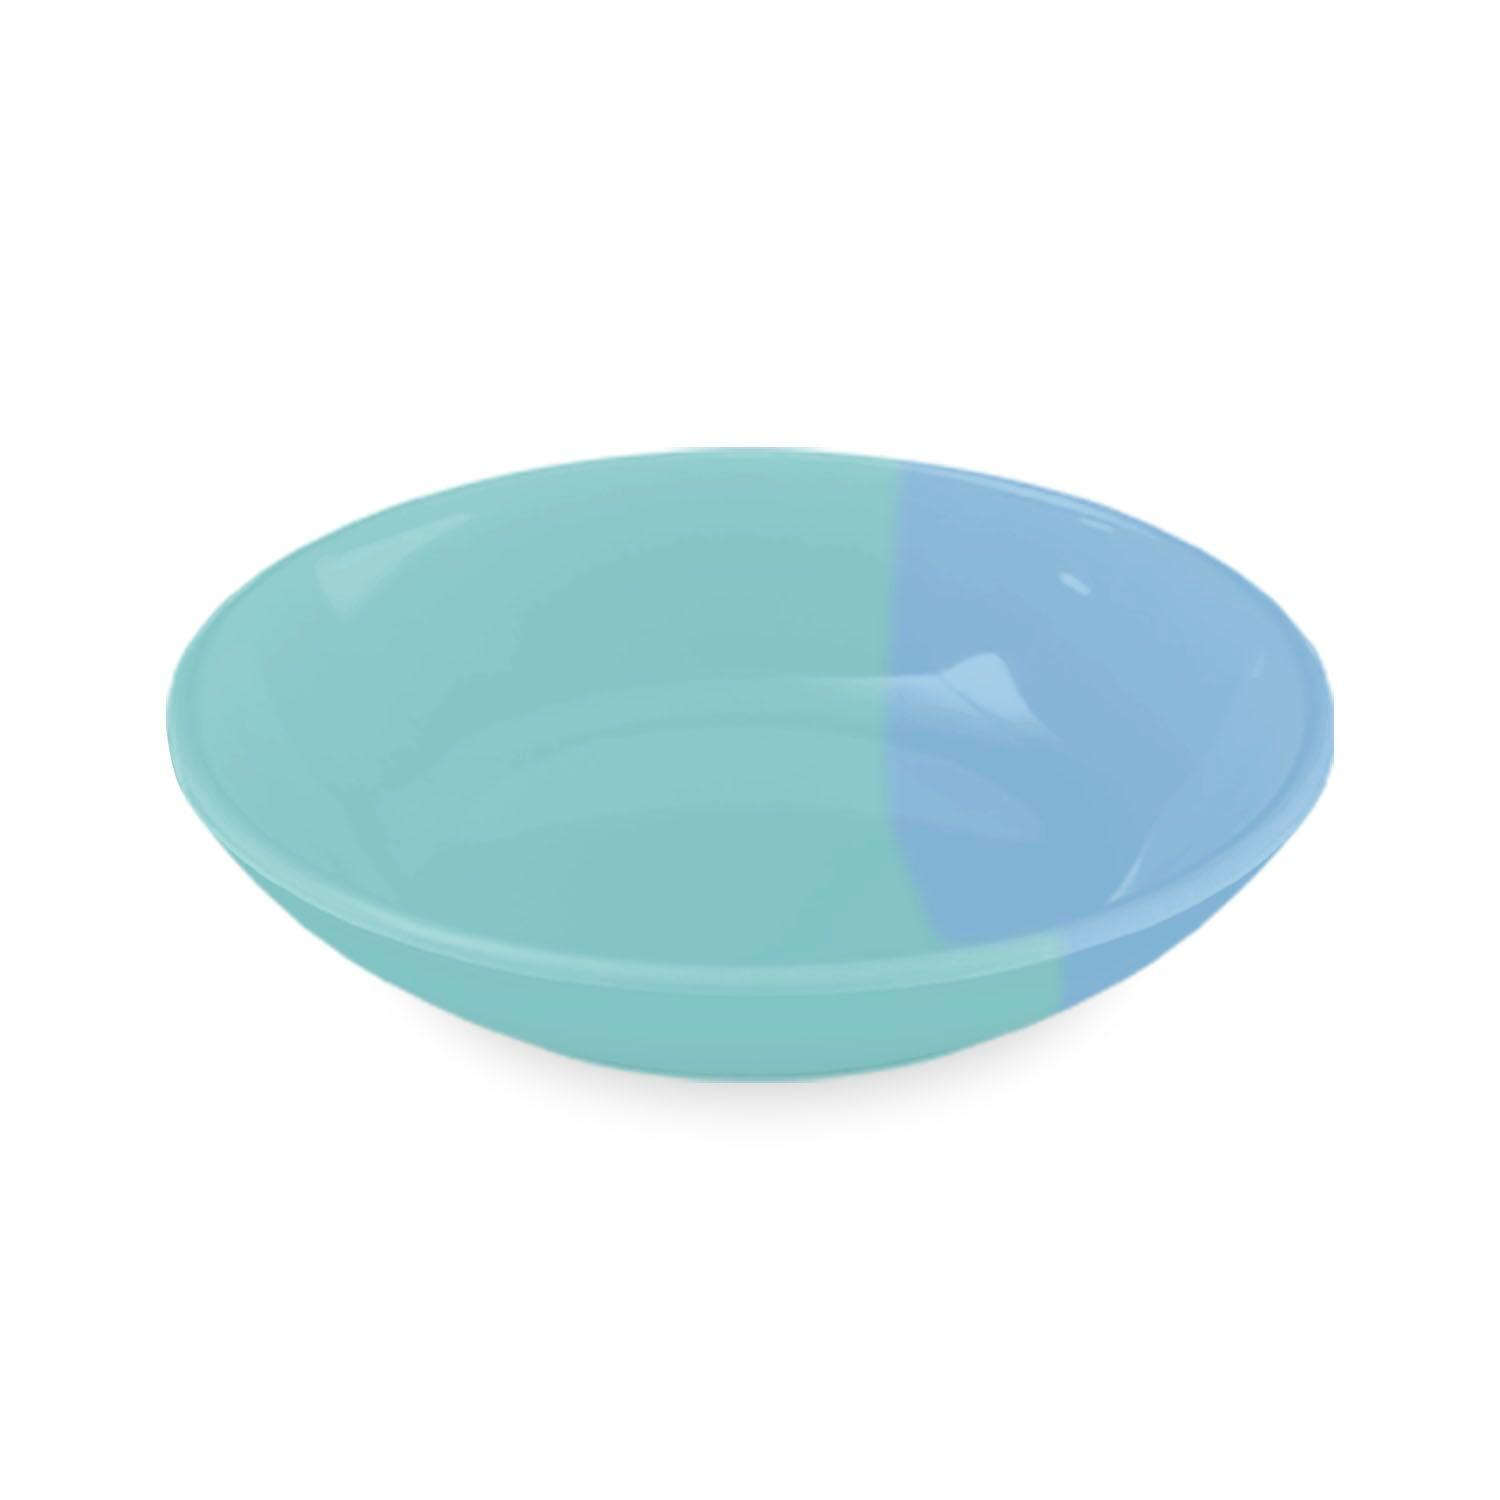 Dual Pet Saucer by TarHong - Blue